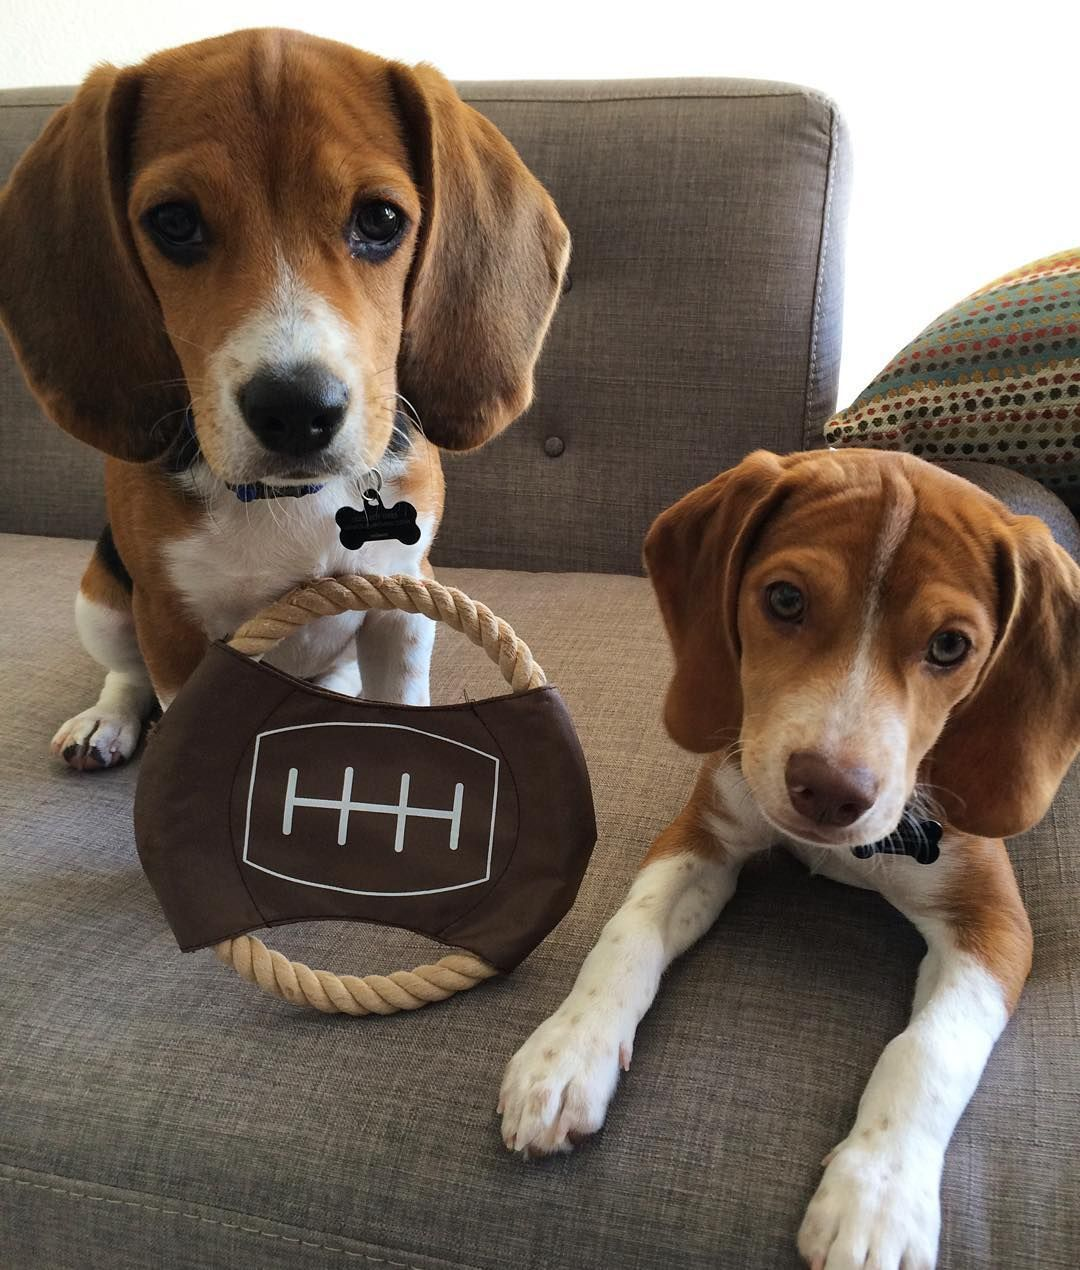 Howie A Chocolate Pocket Beagle Wyatt His Tri Colored Pocket